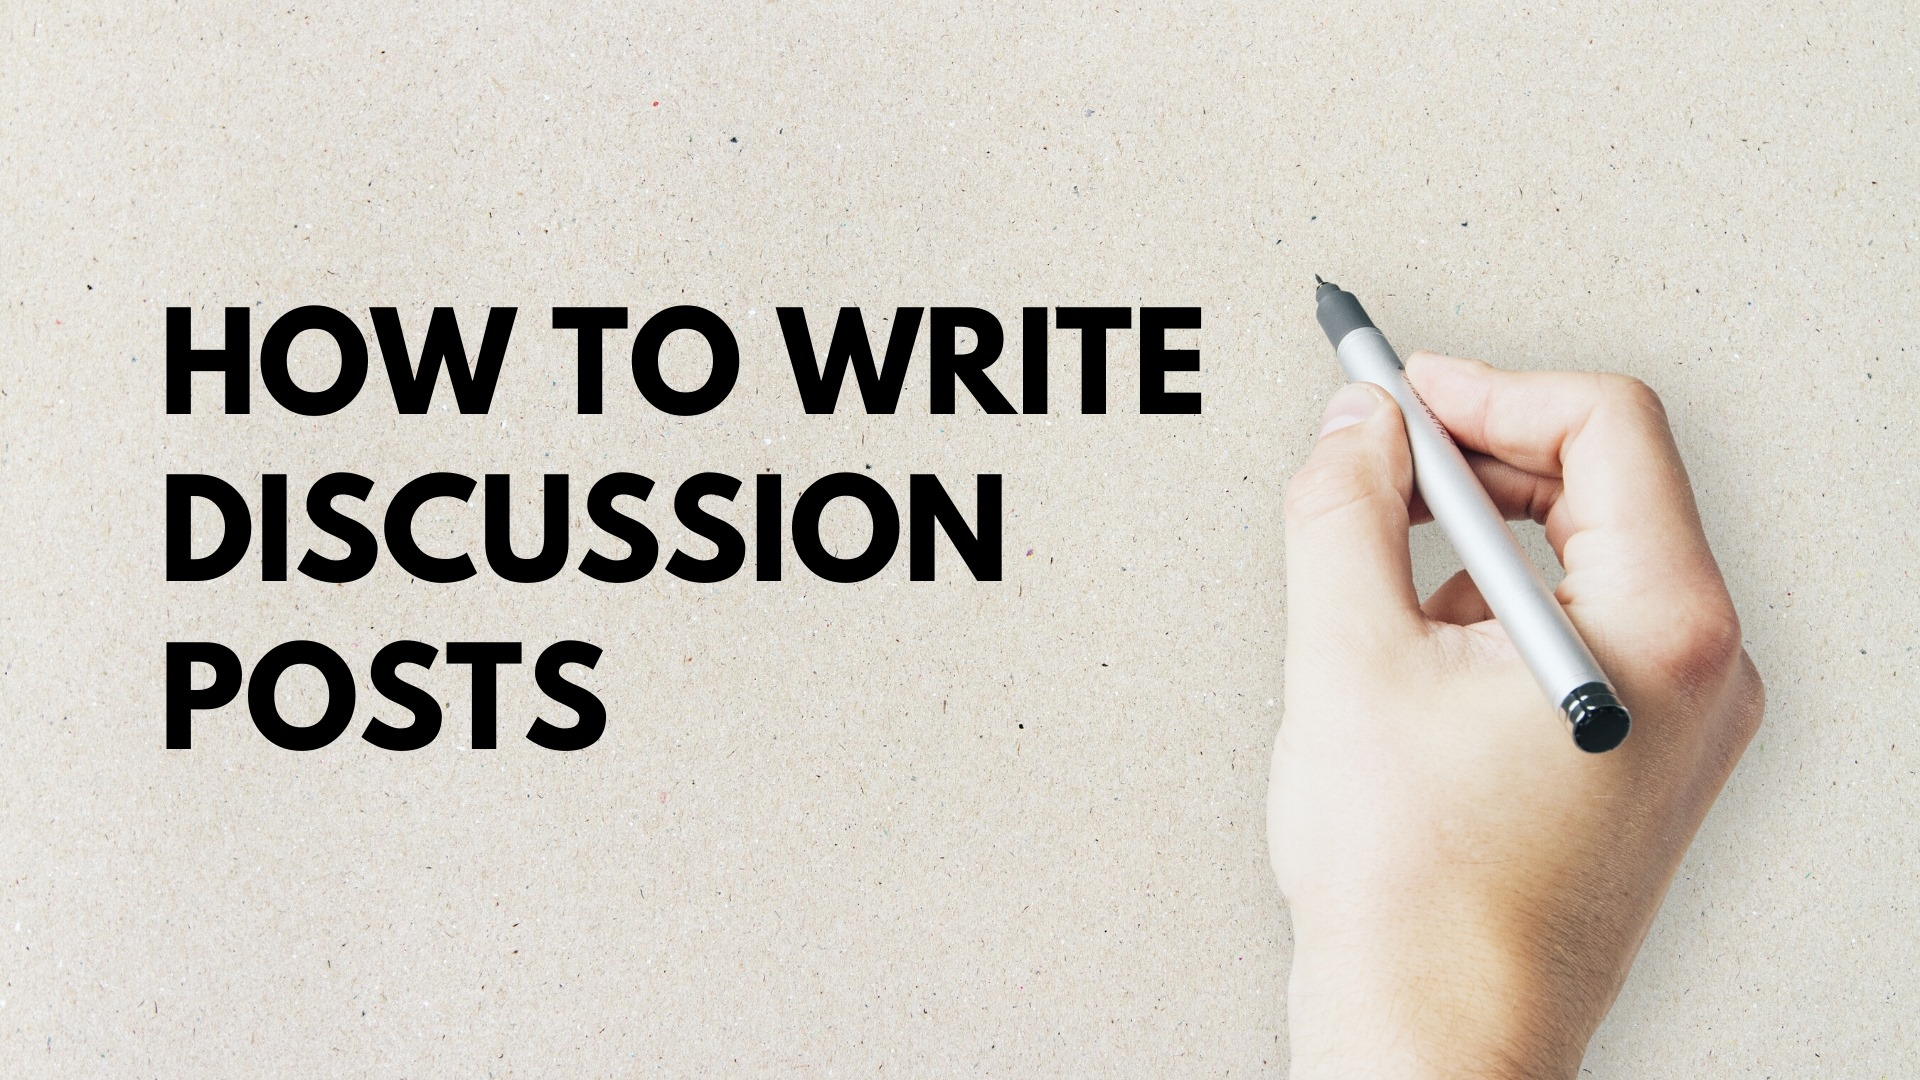 How To Write Discussion Posts